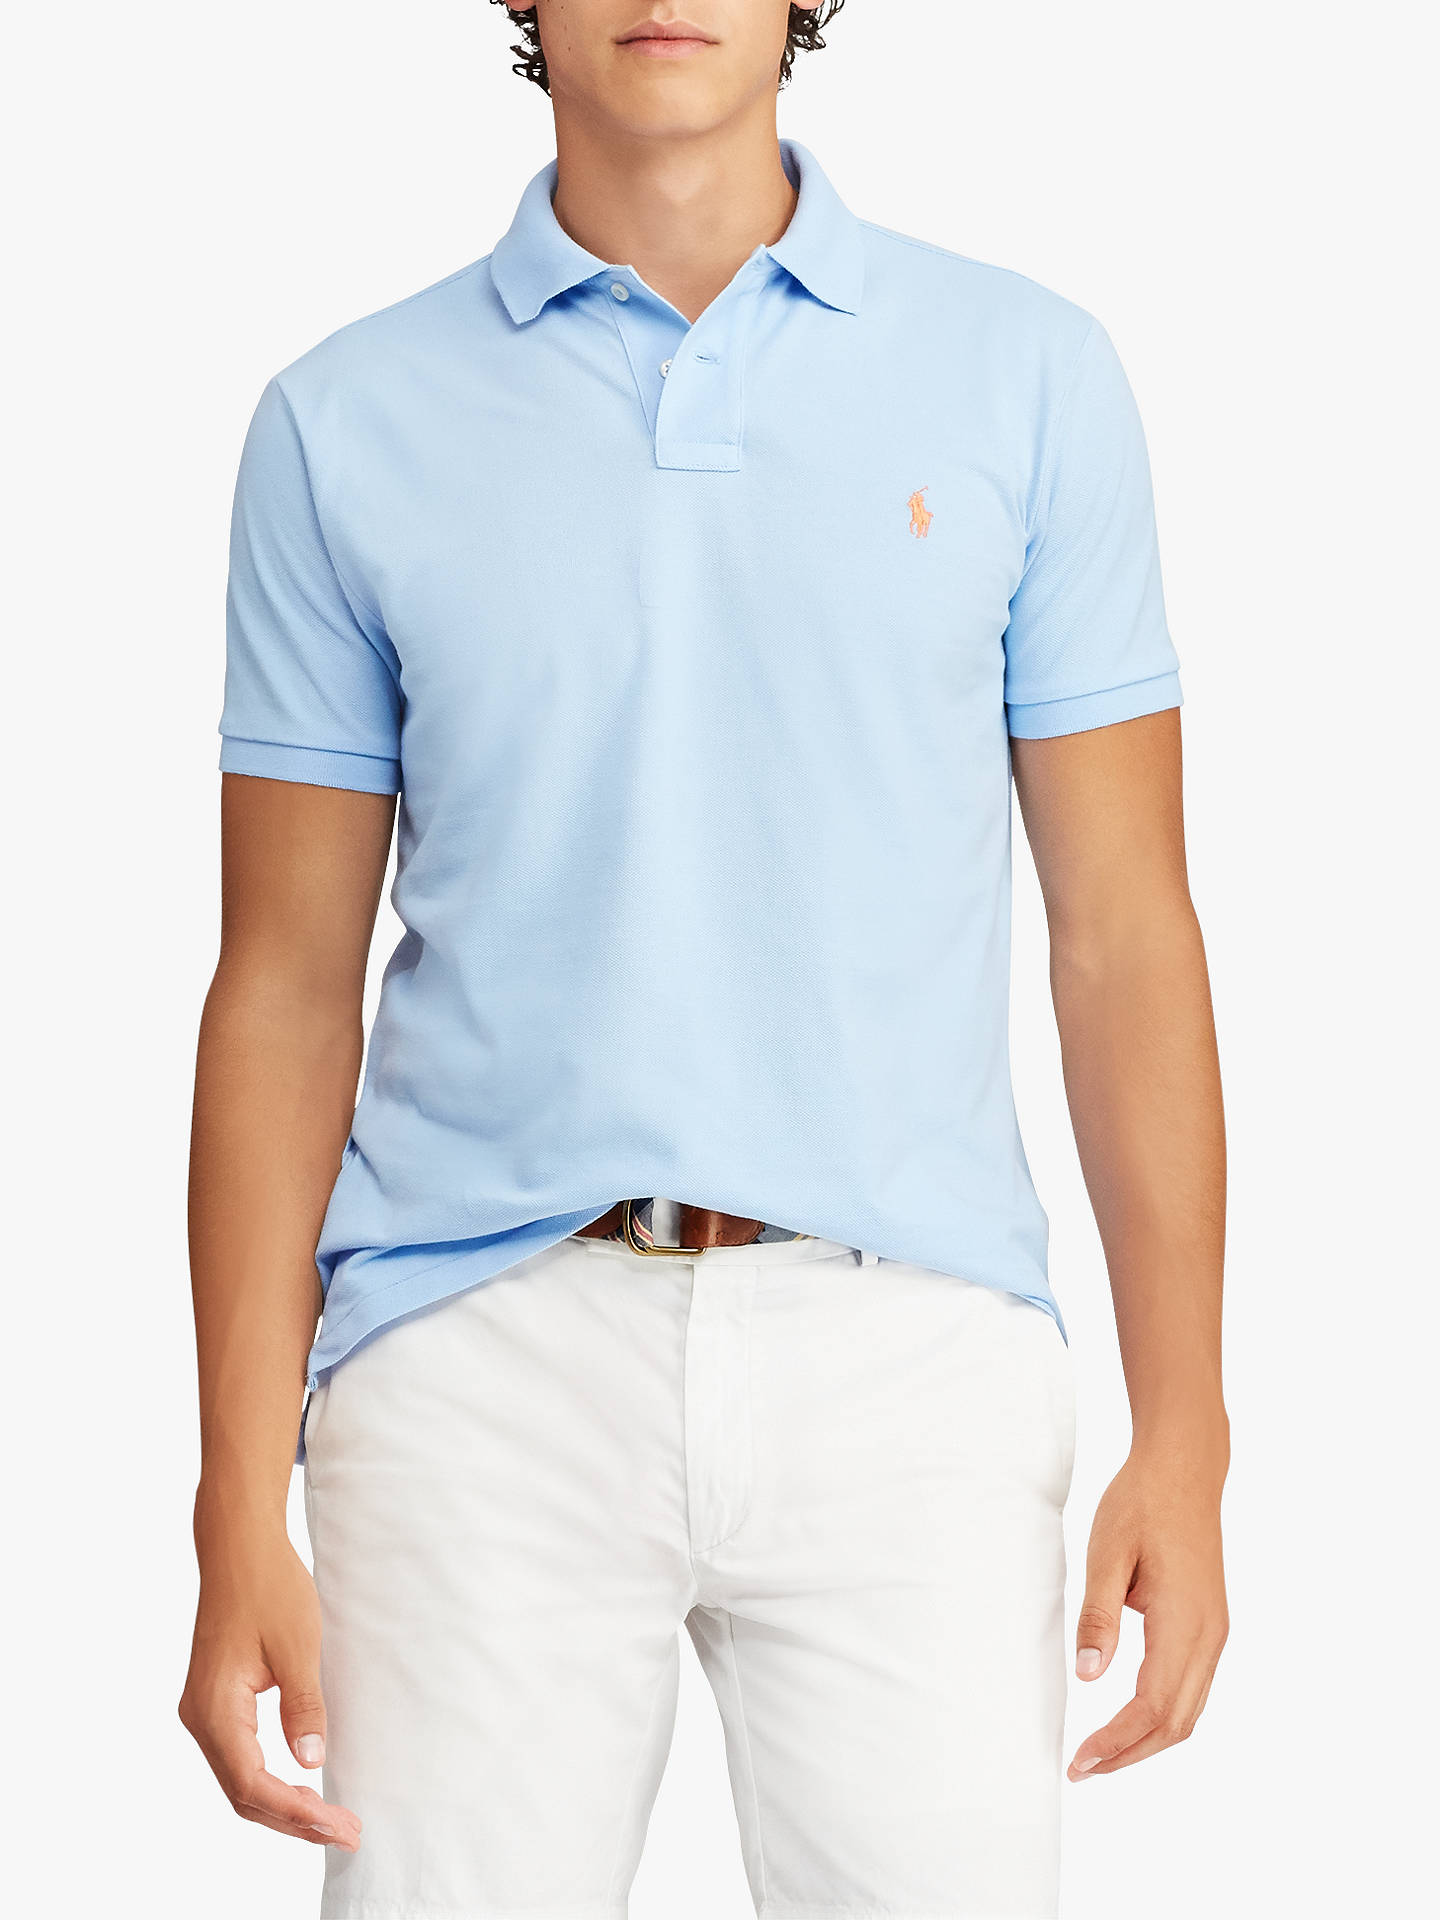 4119cde208513 Polo Ralph Lauren Slim Fit Mesh Polo Shirt at John Lewis   Partners